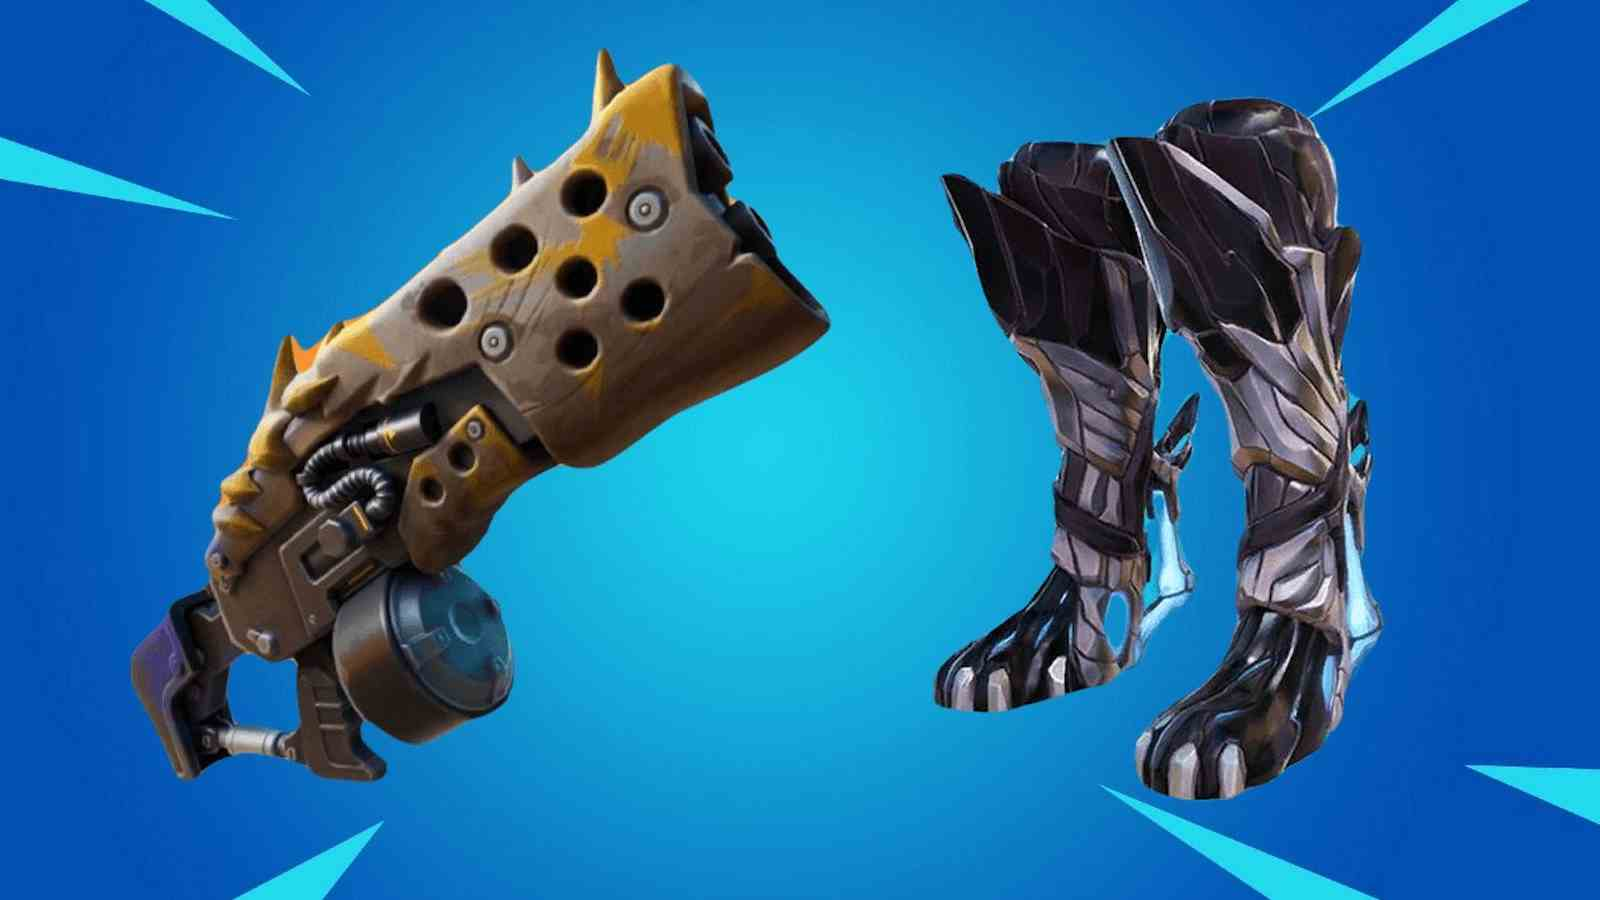 All Mythic Item Locations in Fortnite Chapter 2, Season 6